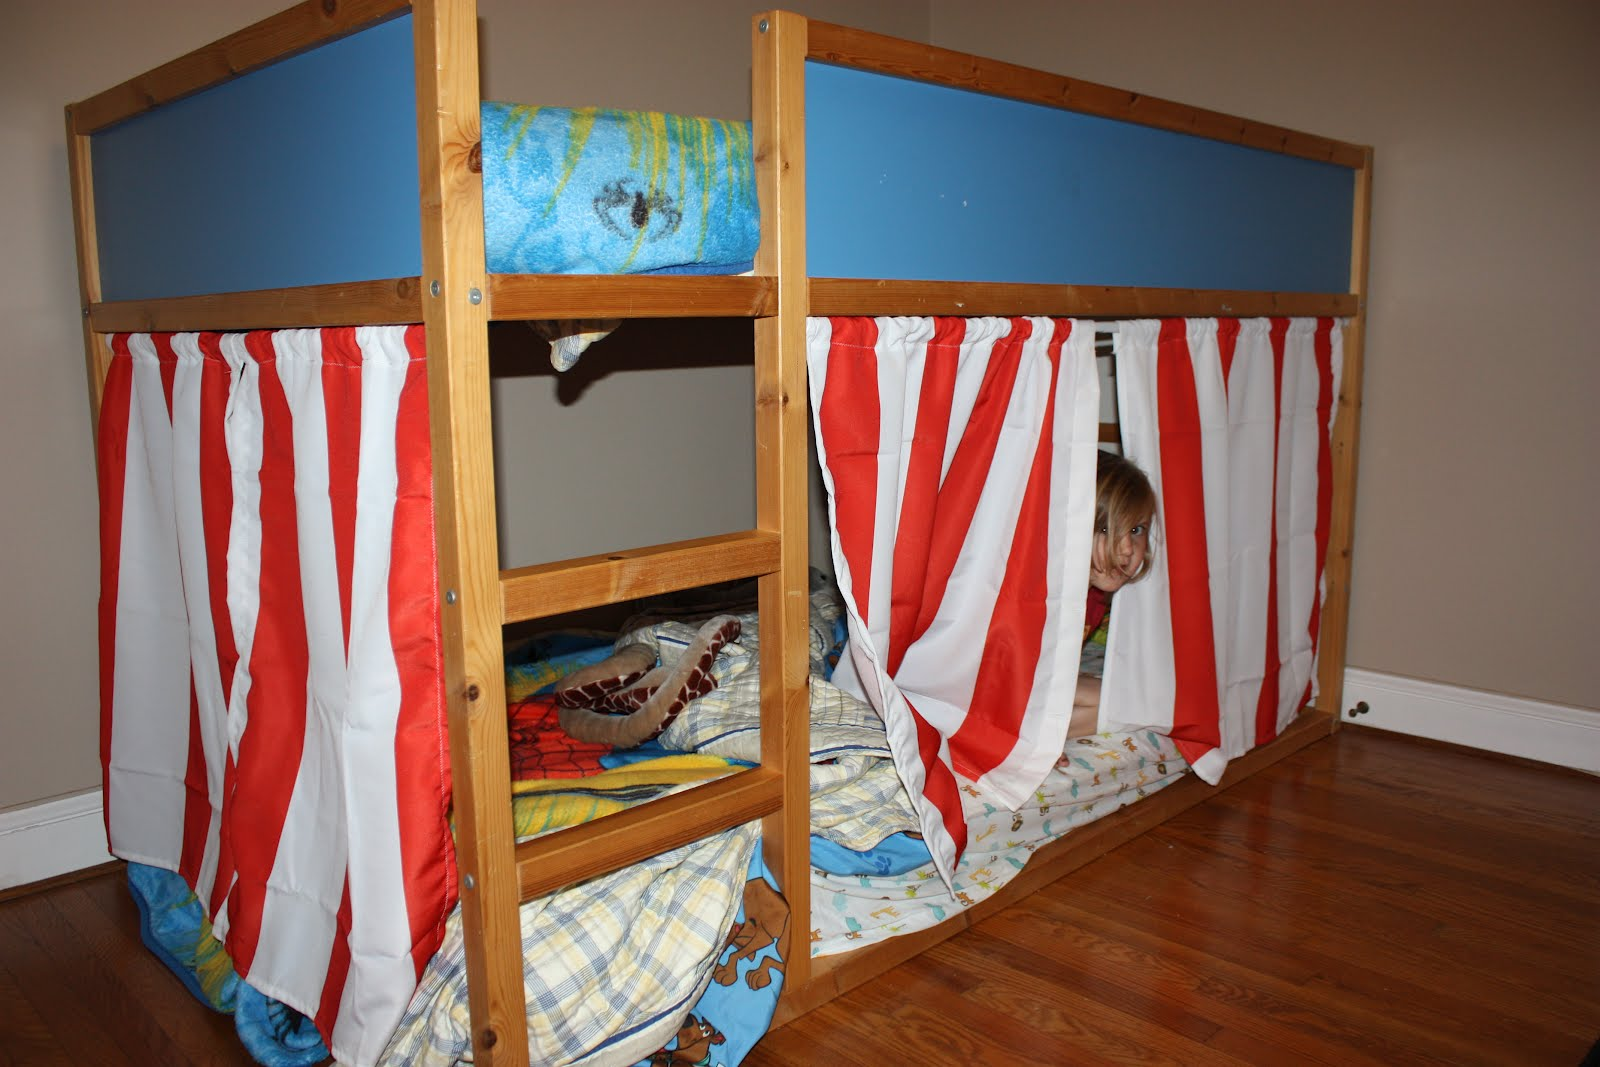 Bed Divider Design Ideas with Bunk Bed Curtains: Bunk Bed Curtains | Bunkbed Tent | Bunk Bed Tent Diy